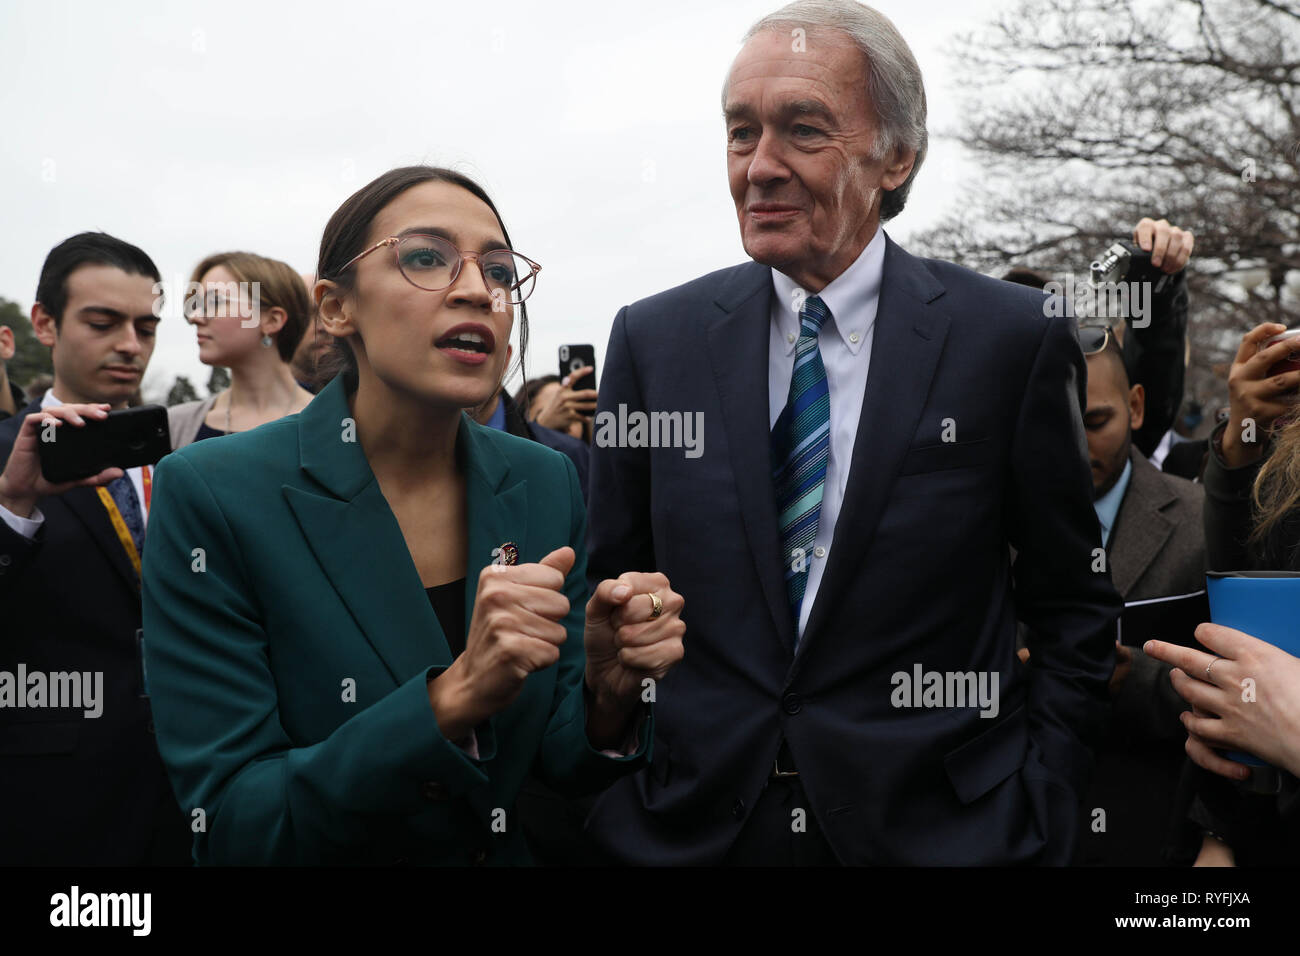 U.S. Rep. Alexandria Ocasio-Cortez, and Senator Ed Markey answers questions during the announcement for the Green New Deal legislation during a press conference outside the Capitol Building February 7, 2019 in Washington, D.C. Stock Photo